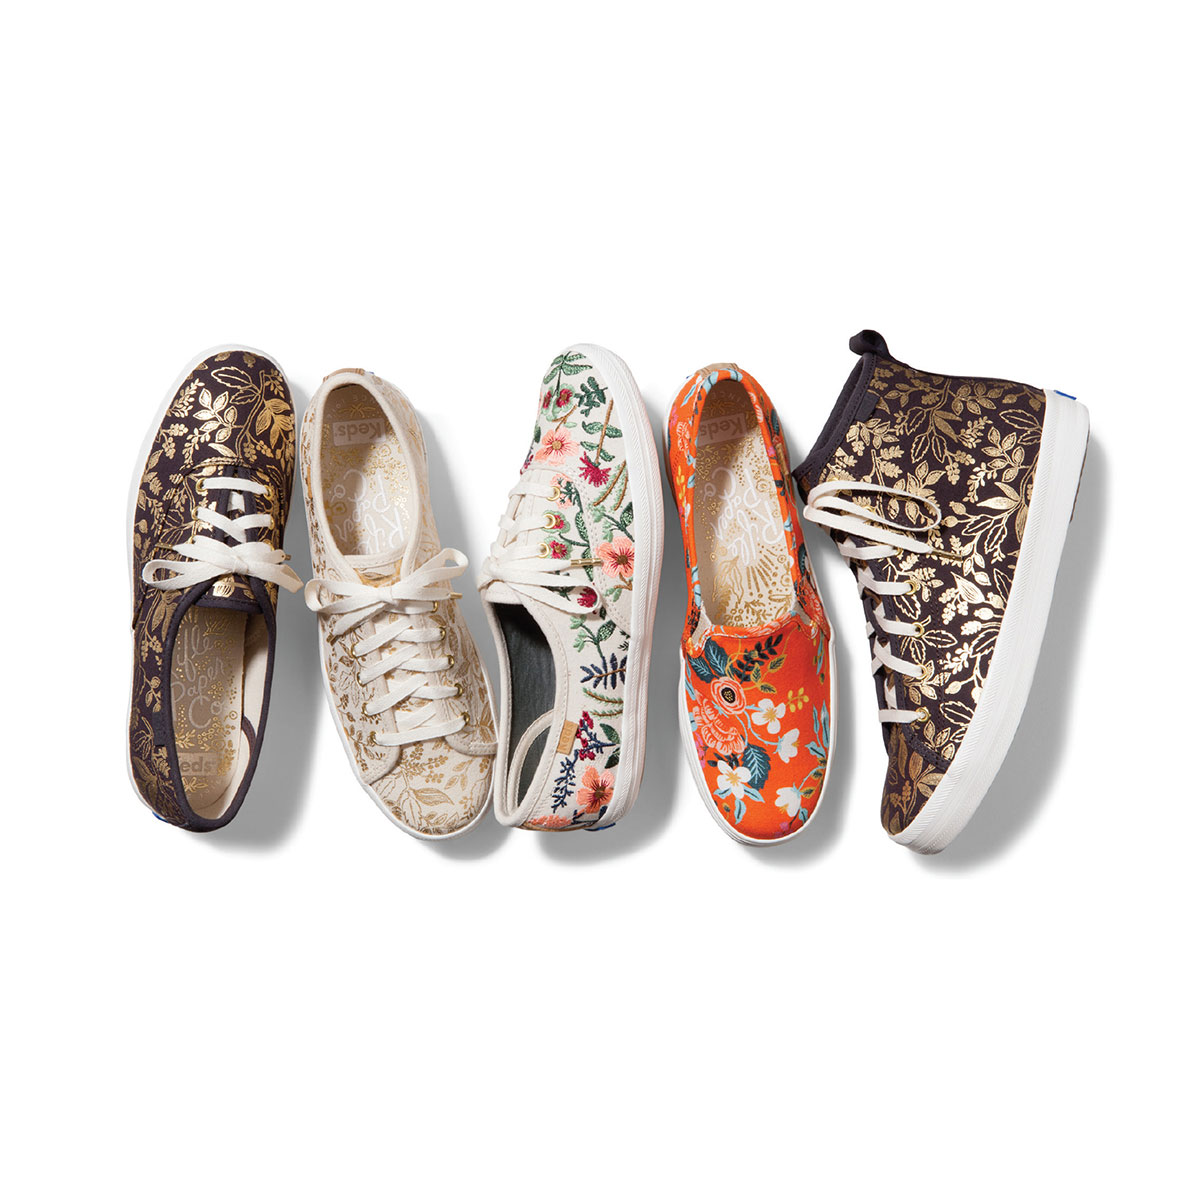 f9f66945b6 Check Out the New Rifle Paper Co. and Keds Fall Collection